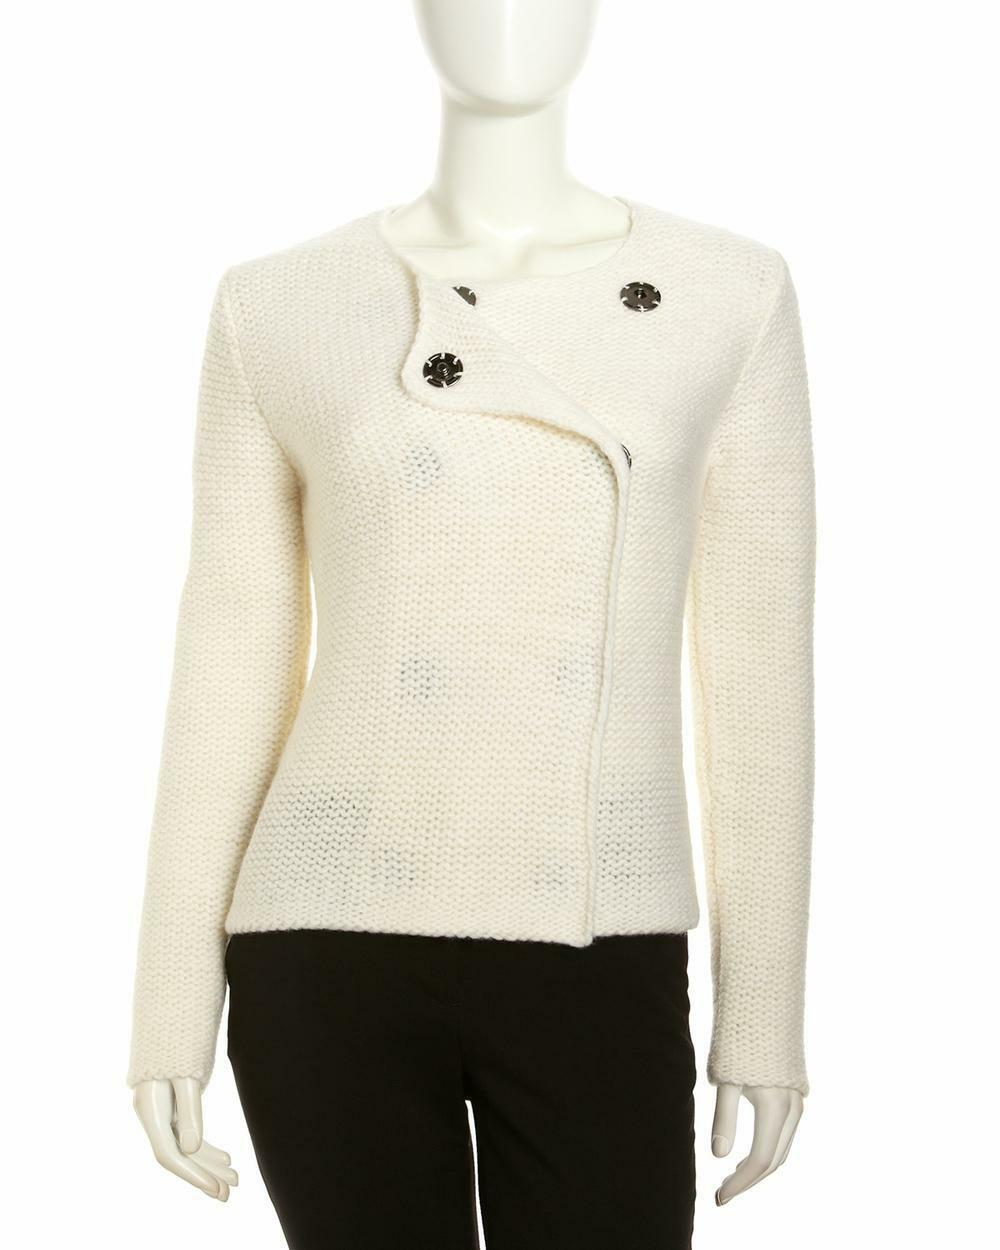 NWT Robert Rodriguez Women's Double-Breasted Crochet Sweater, Ivory size S  396